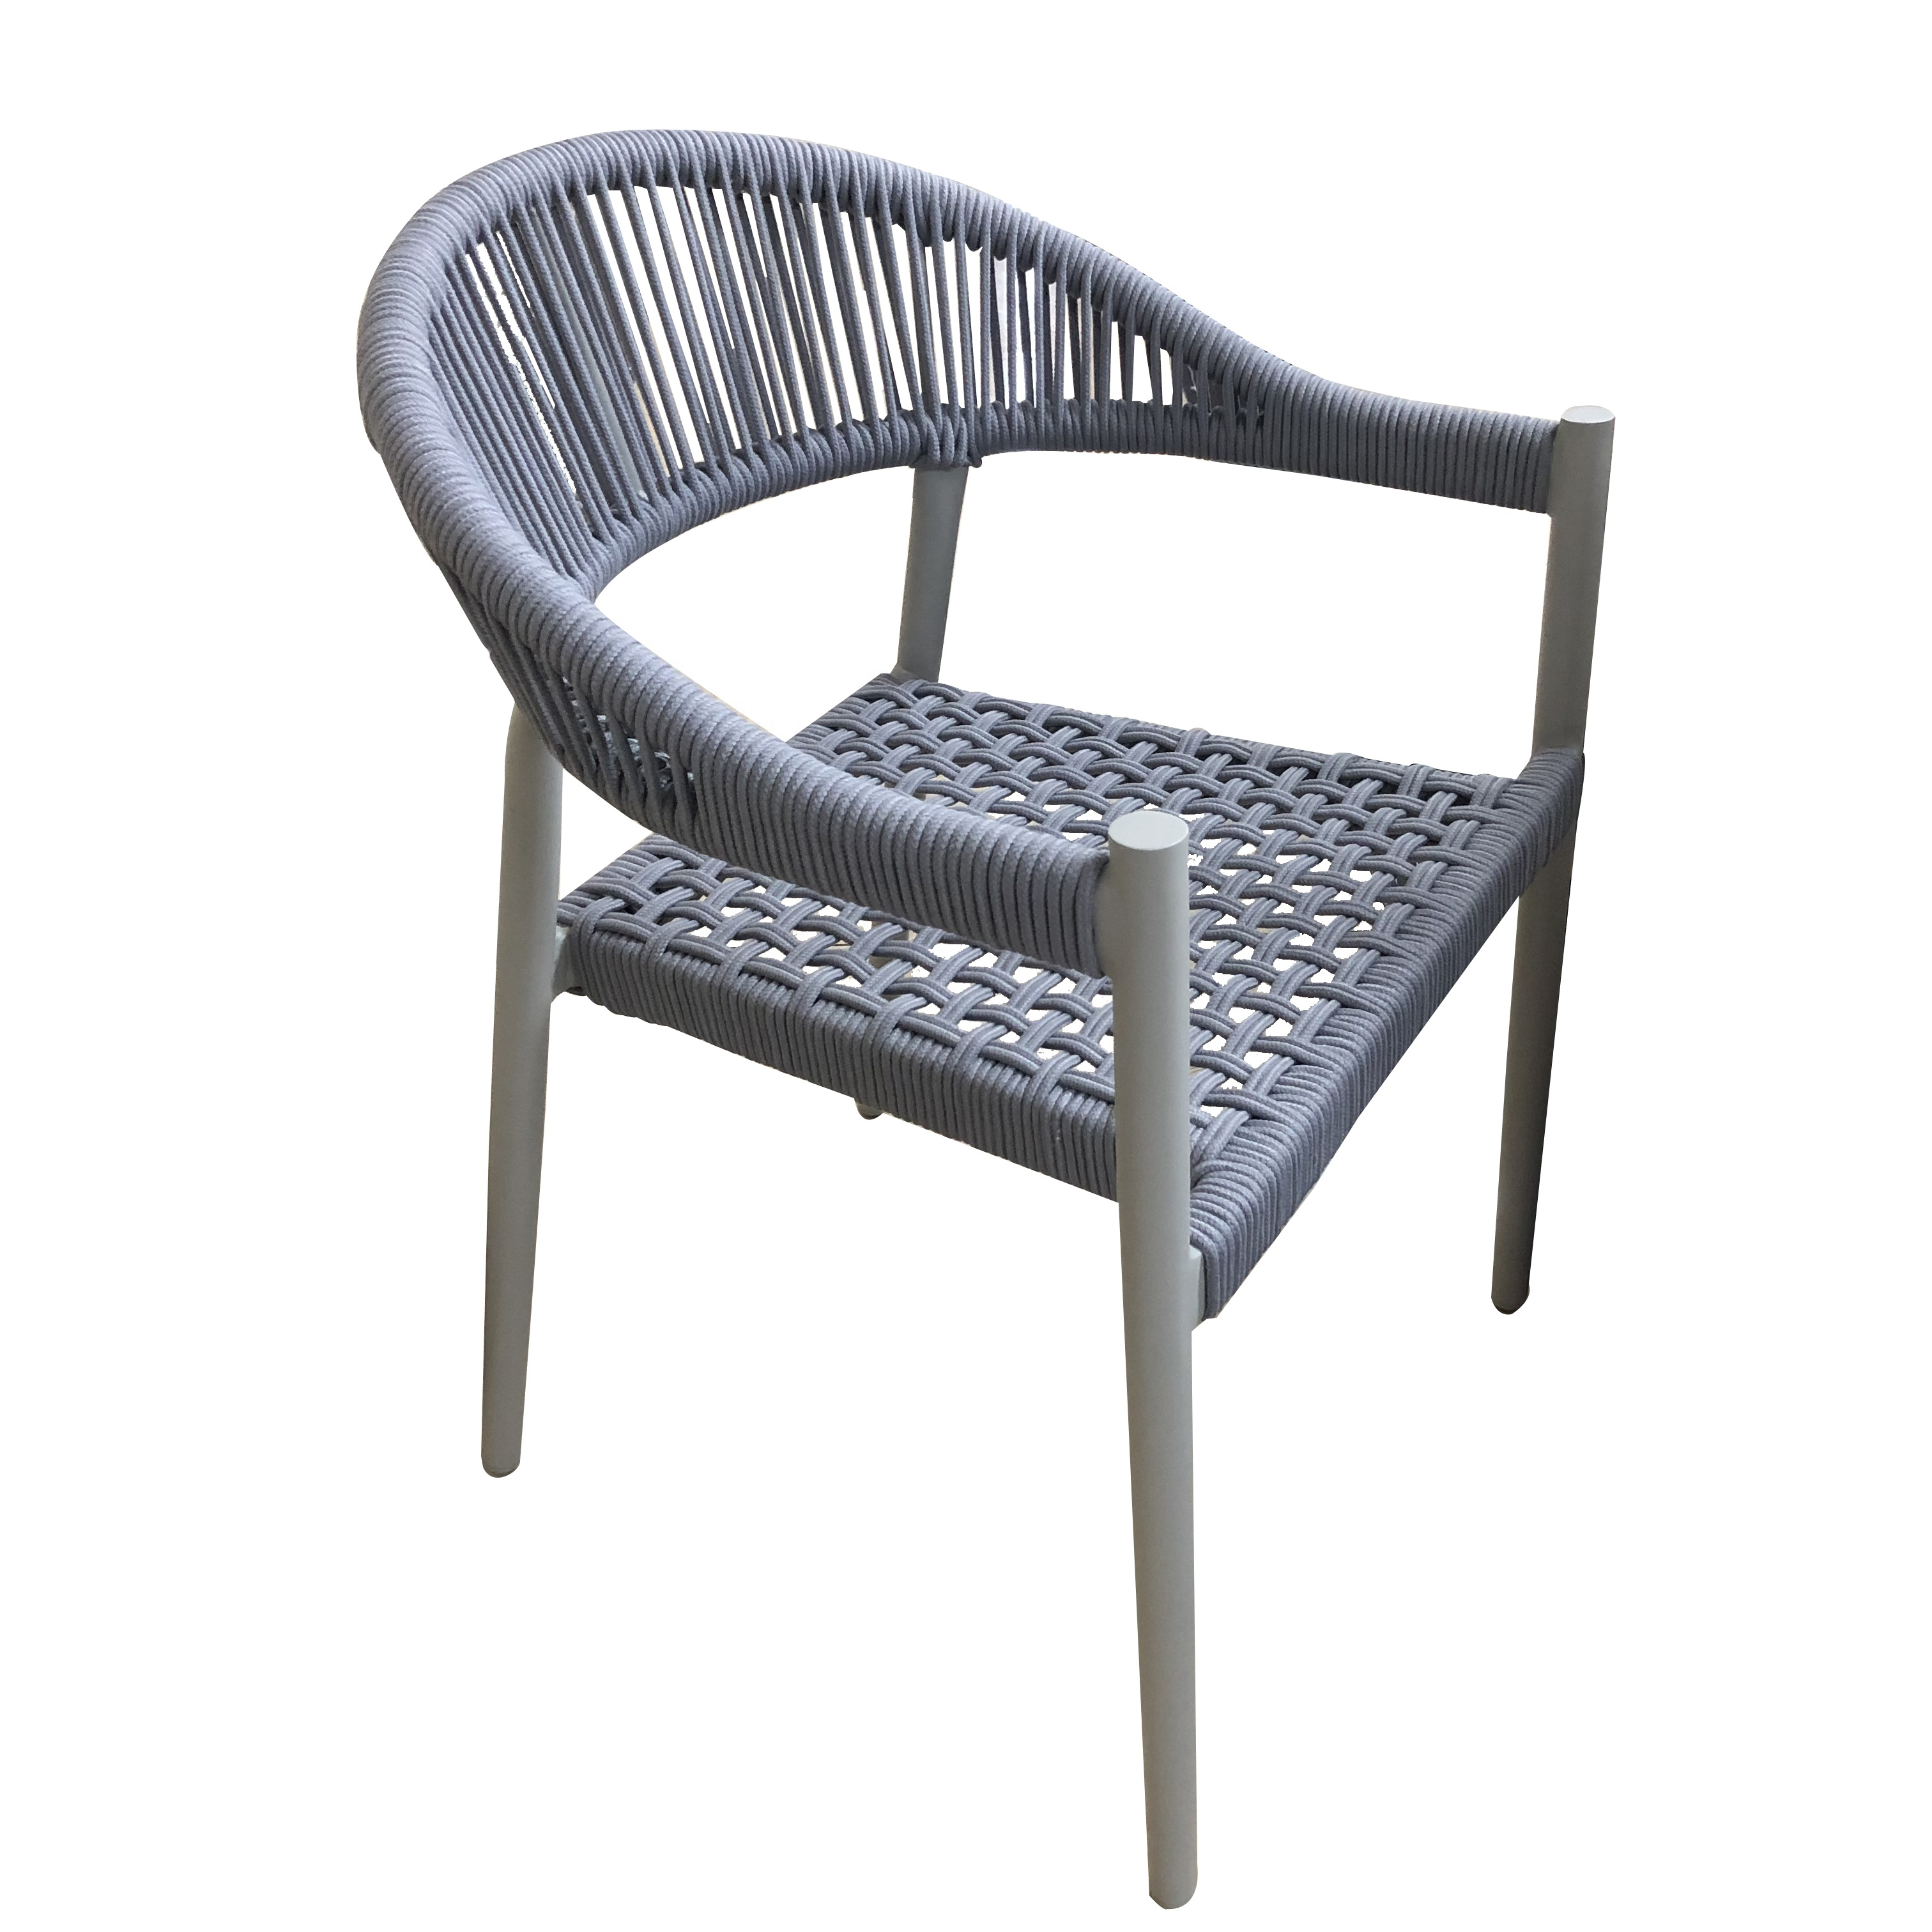 Cheap Wicker Rattan Dining Chair Bamboo Furniture Wrought Iron Chairs Buy Product On Alibaba Com